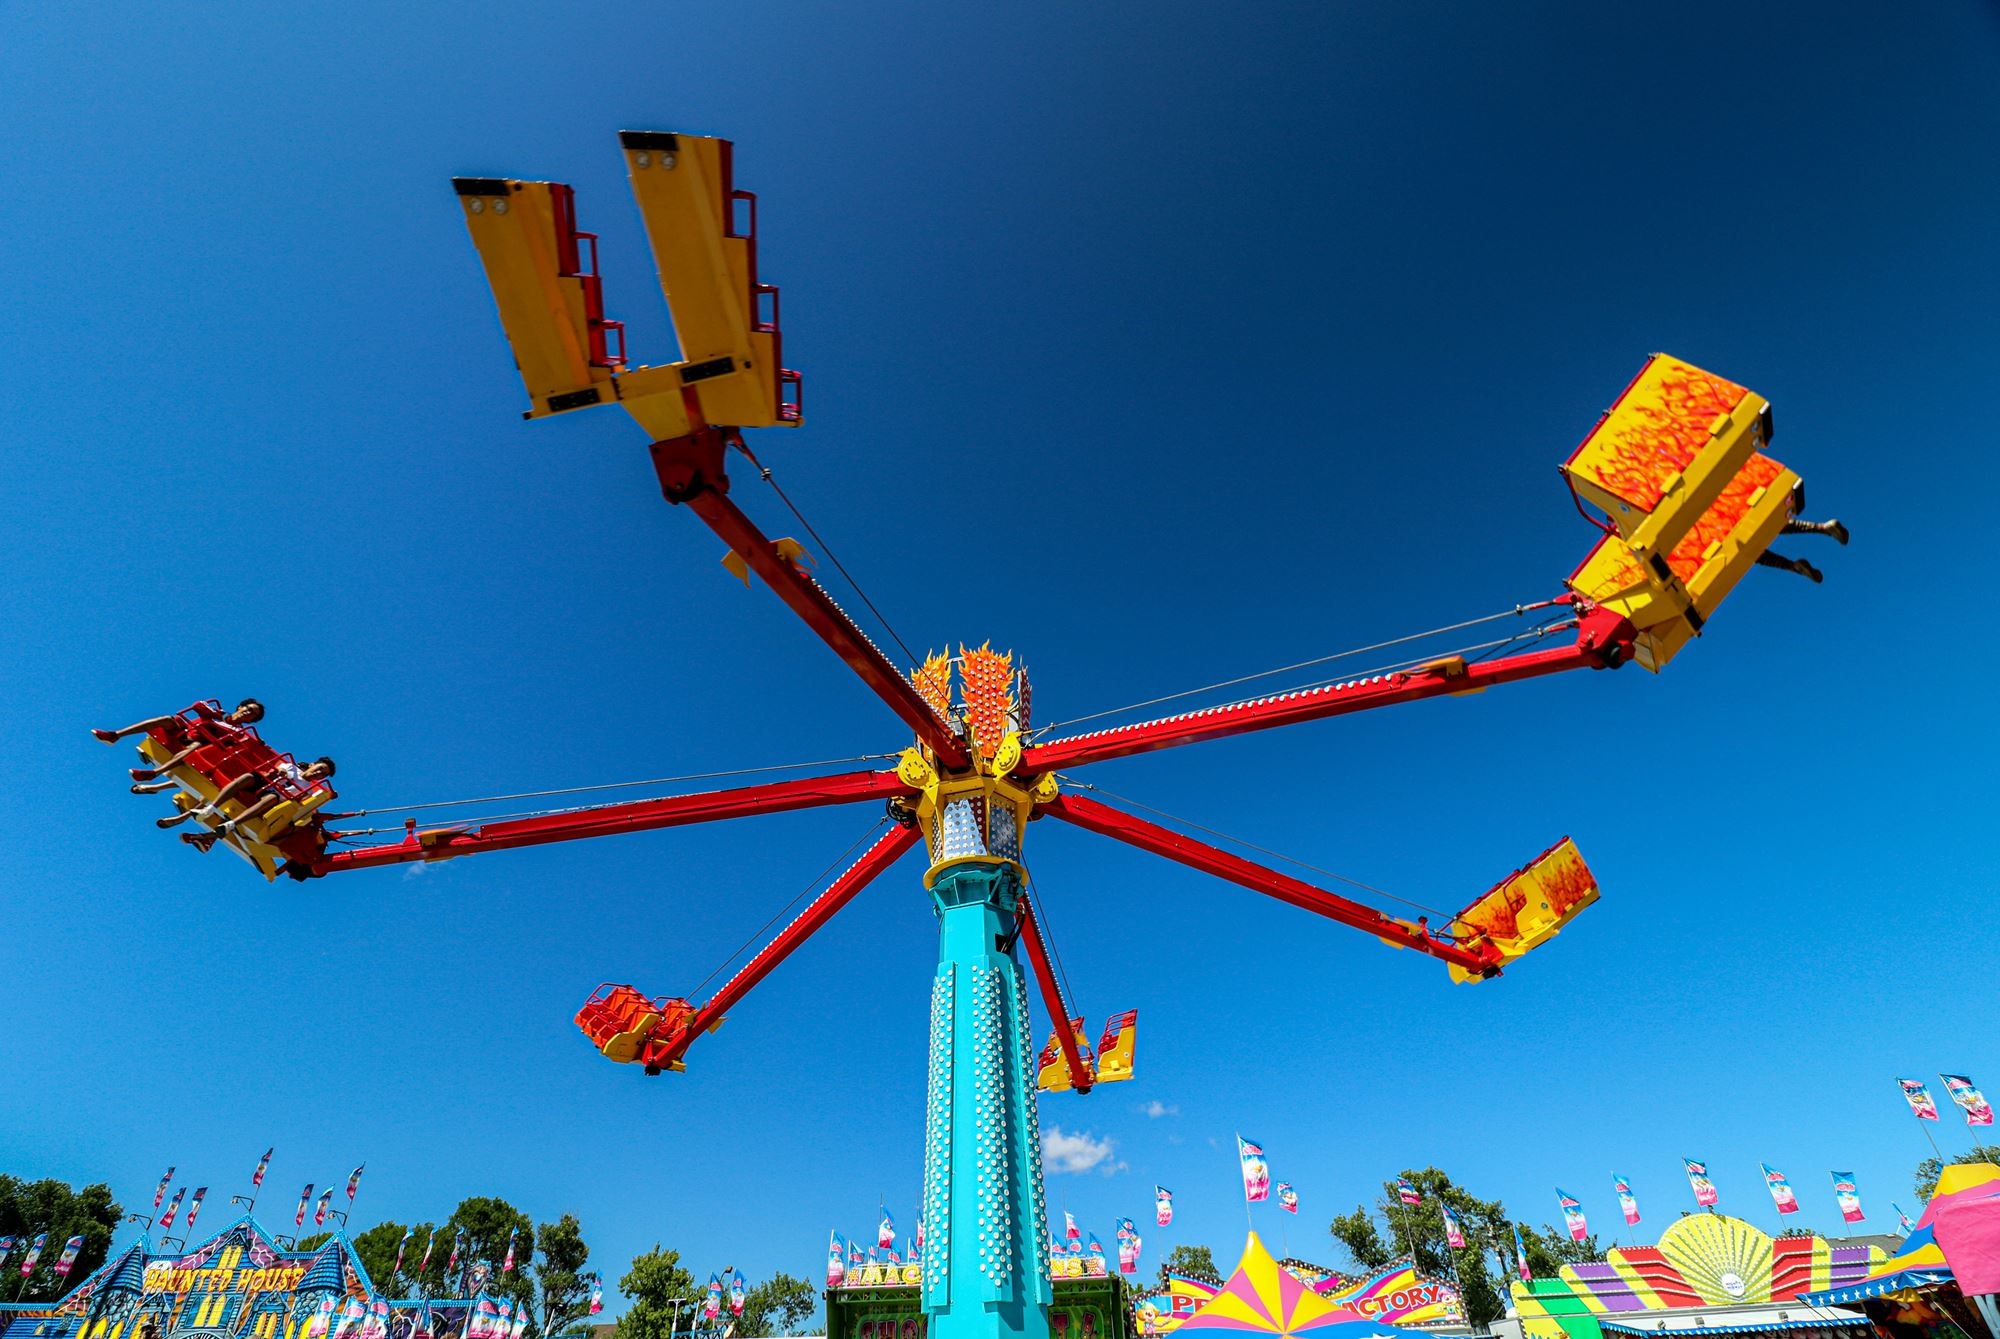 South Florida Fair Press Releases With Florida State Fairgrounds Events 2021